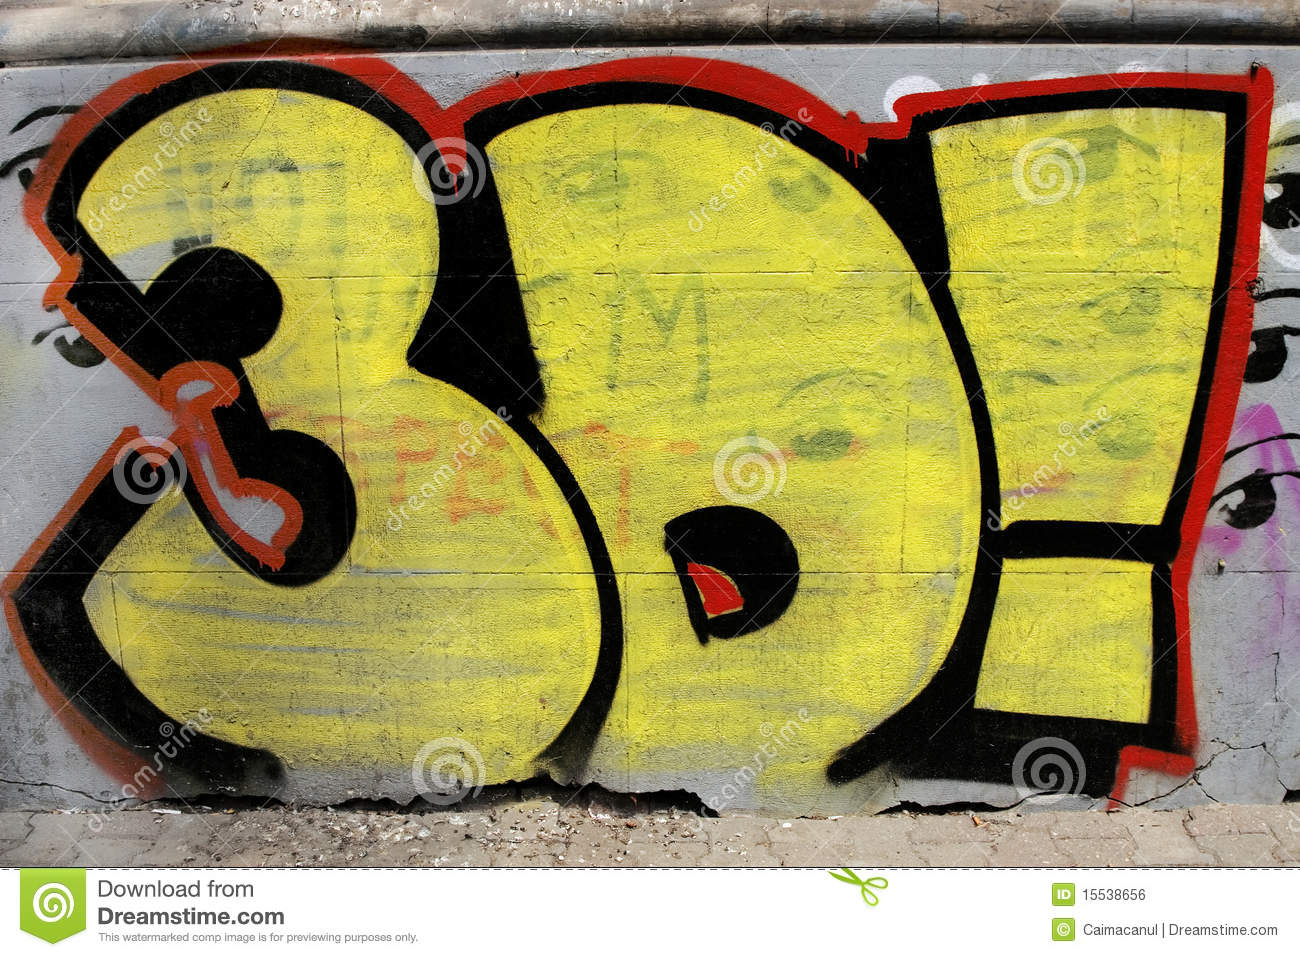 Colorful Graffiti On Street Wall Stock Photo - Image of background ...